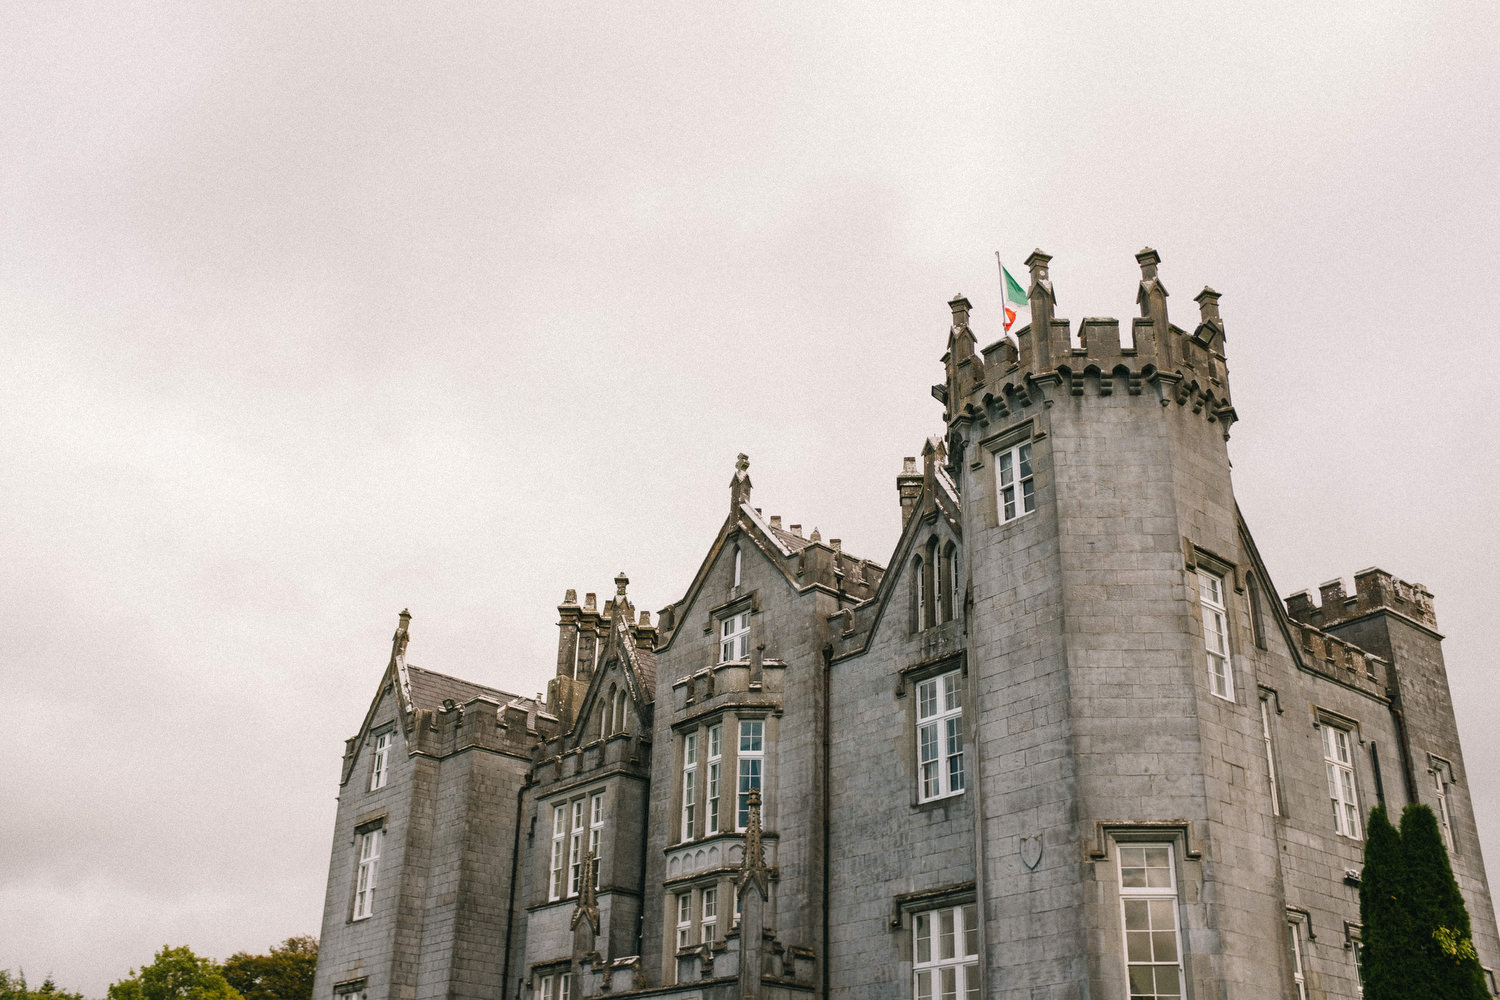 000000000000000000000002_bride_style_vintage_photography_david_mcclelland_ireland_castle_hollywood_kinnity_wedding_photographer_fujifilm